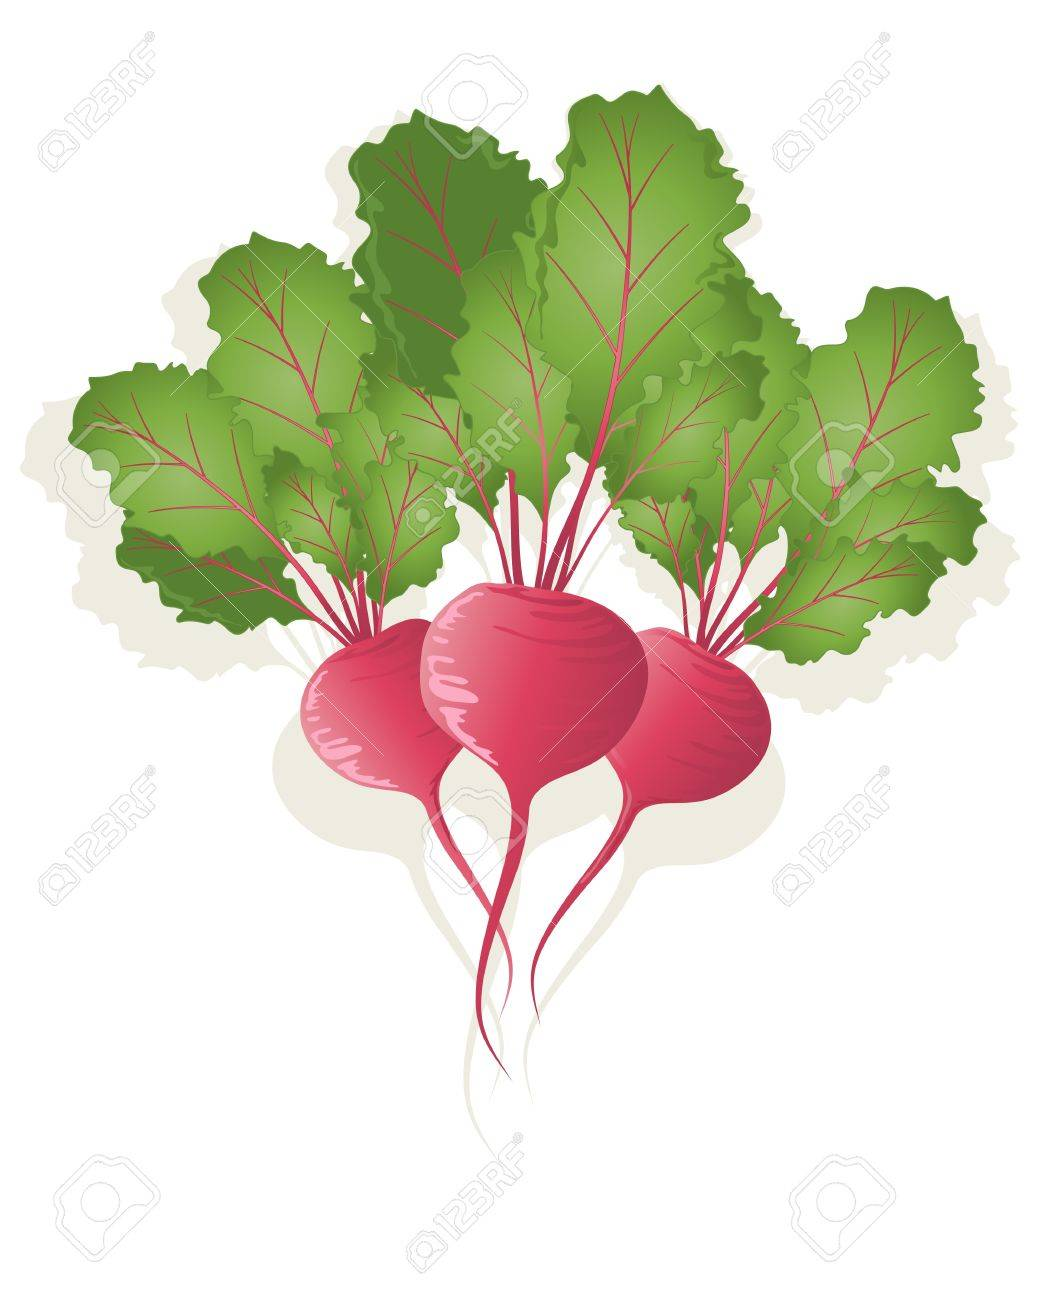 an illustration of three bright red beetroot plants with crimson stems and green leaves on a white background Stock Vector - 13081951